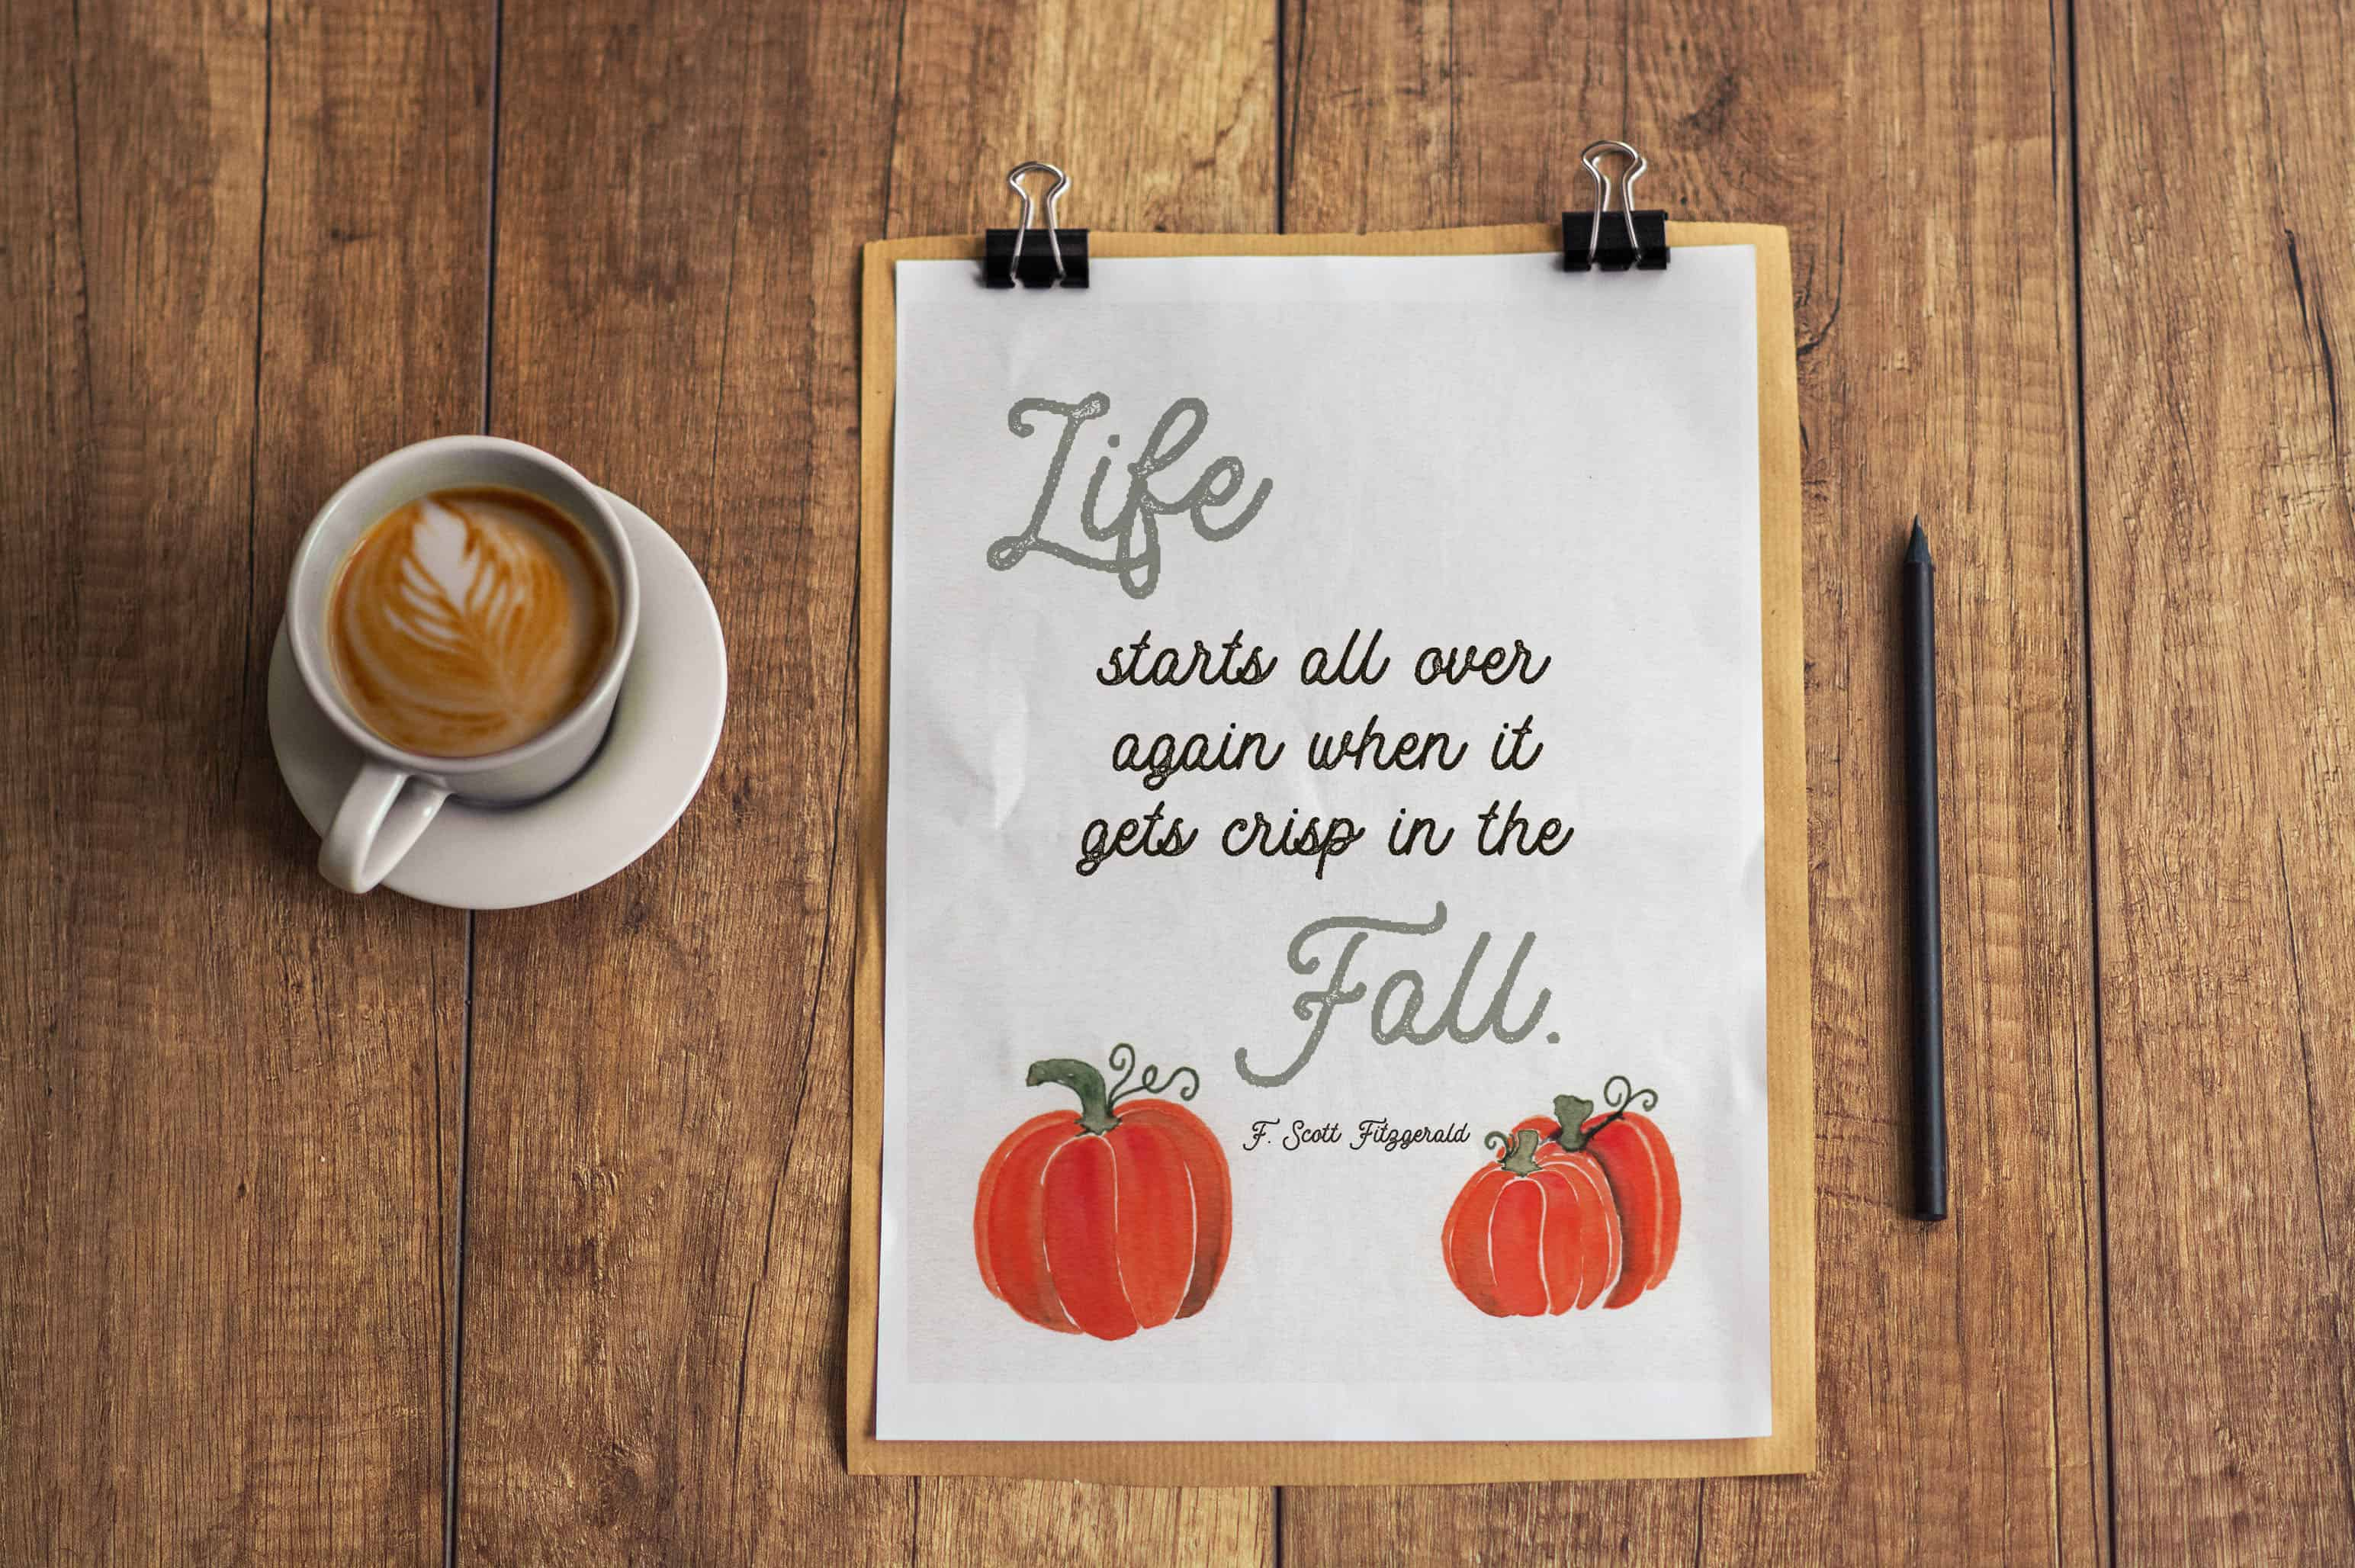 Photo of fall quote on paper laying on table next to cup of coffee. Paper has fall quote that says life starts all over again when it gets crisp in the Fall. F. Scott Fitzgerald.